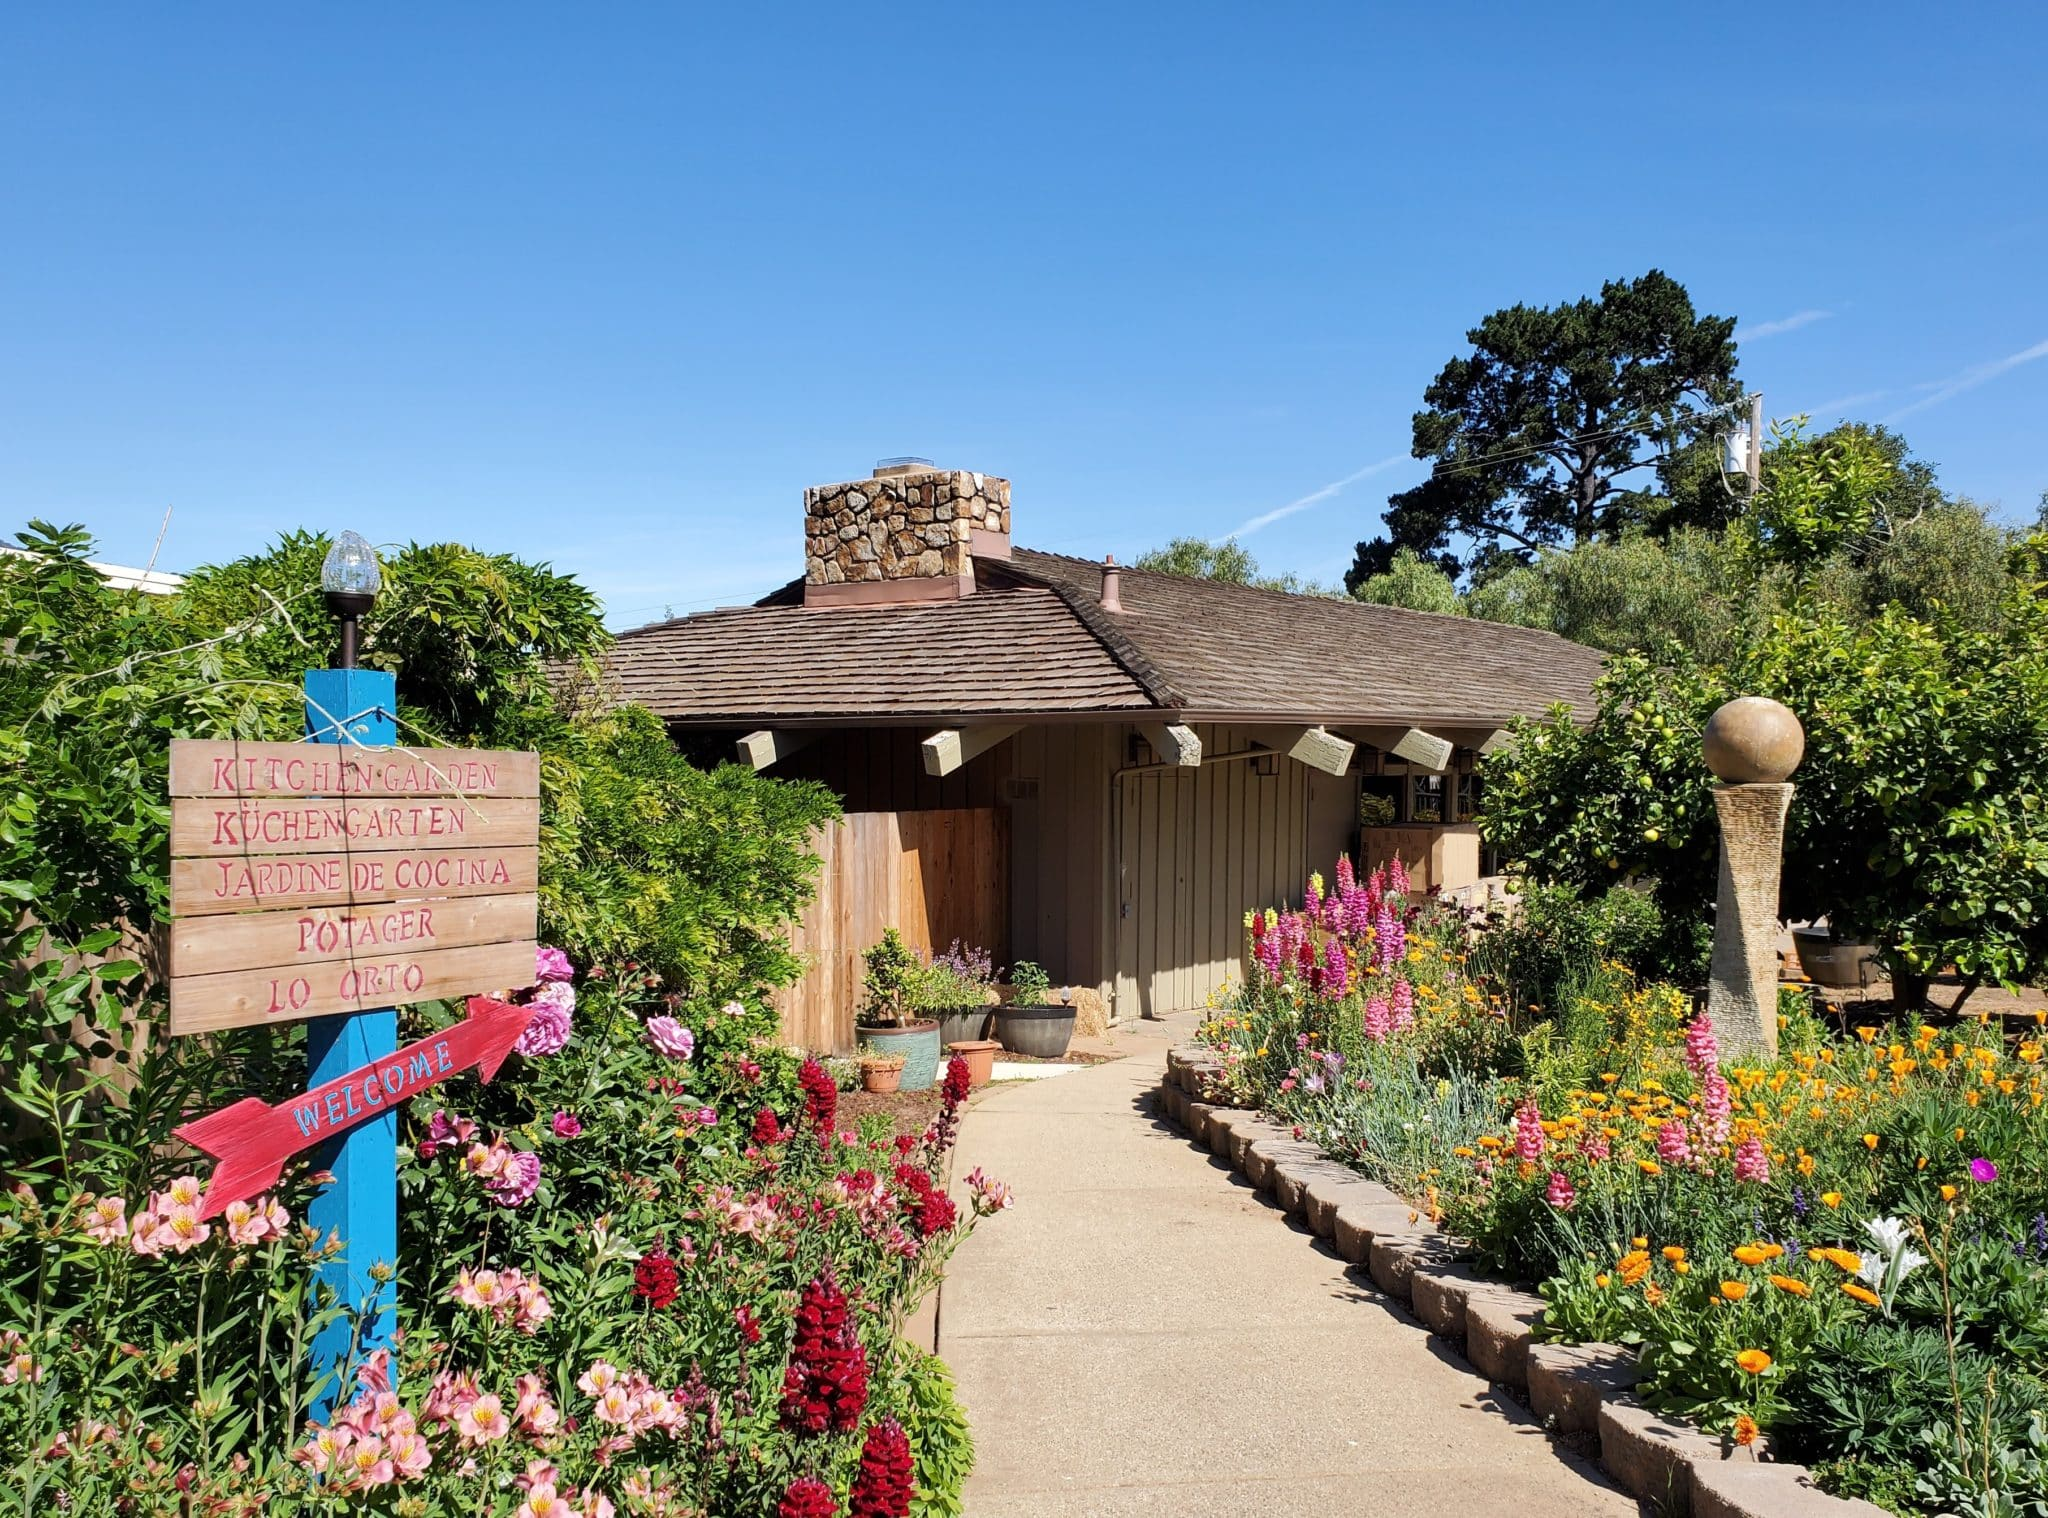 Exterior view of Carmel Valley Lodge cottage surrounded by colorful flowers, directional signs and blue skies